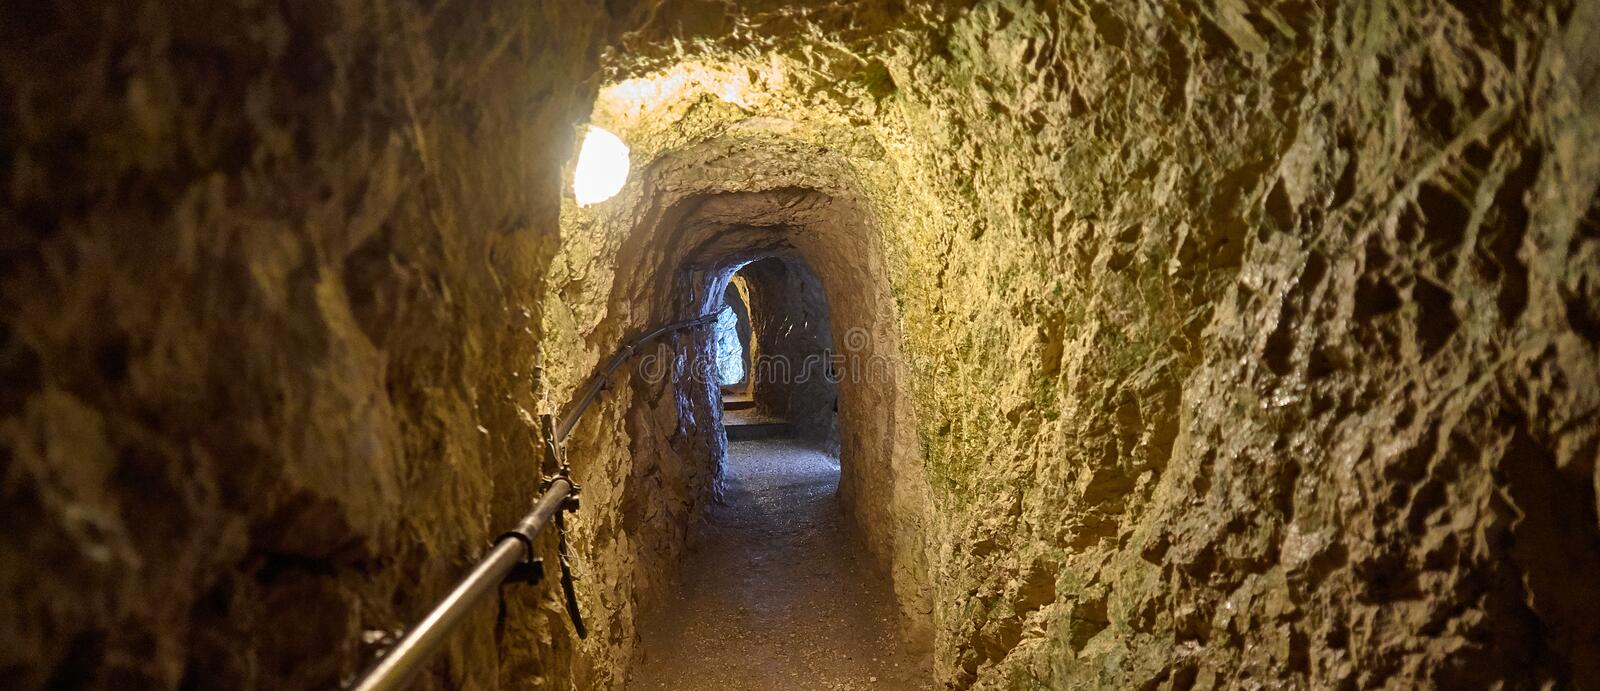 View through a narrow tunnel in the mountains made of limestone with an electric lamp on the ceiling royalty free stock photo